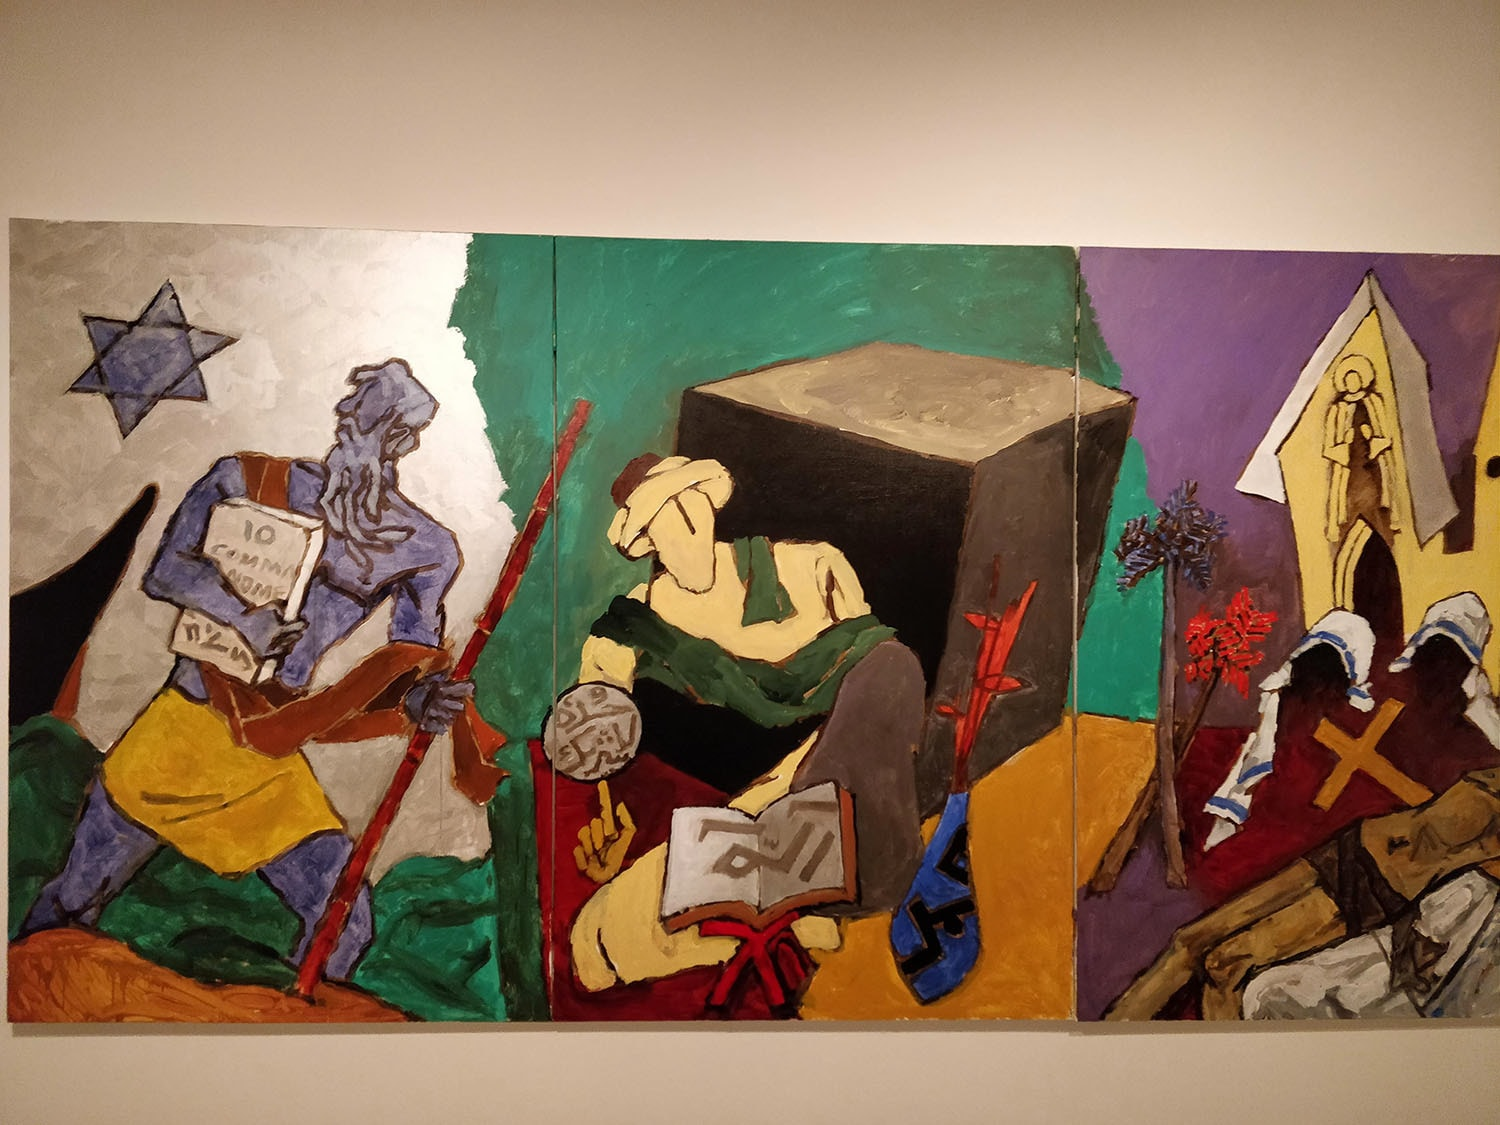 """""""World Religions"""", 2008. Acrylic on canvas. Qatar Foundation Collection Doha.—Photo by author"""